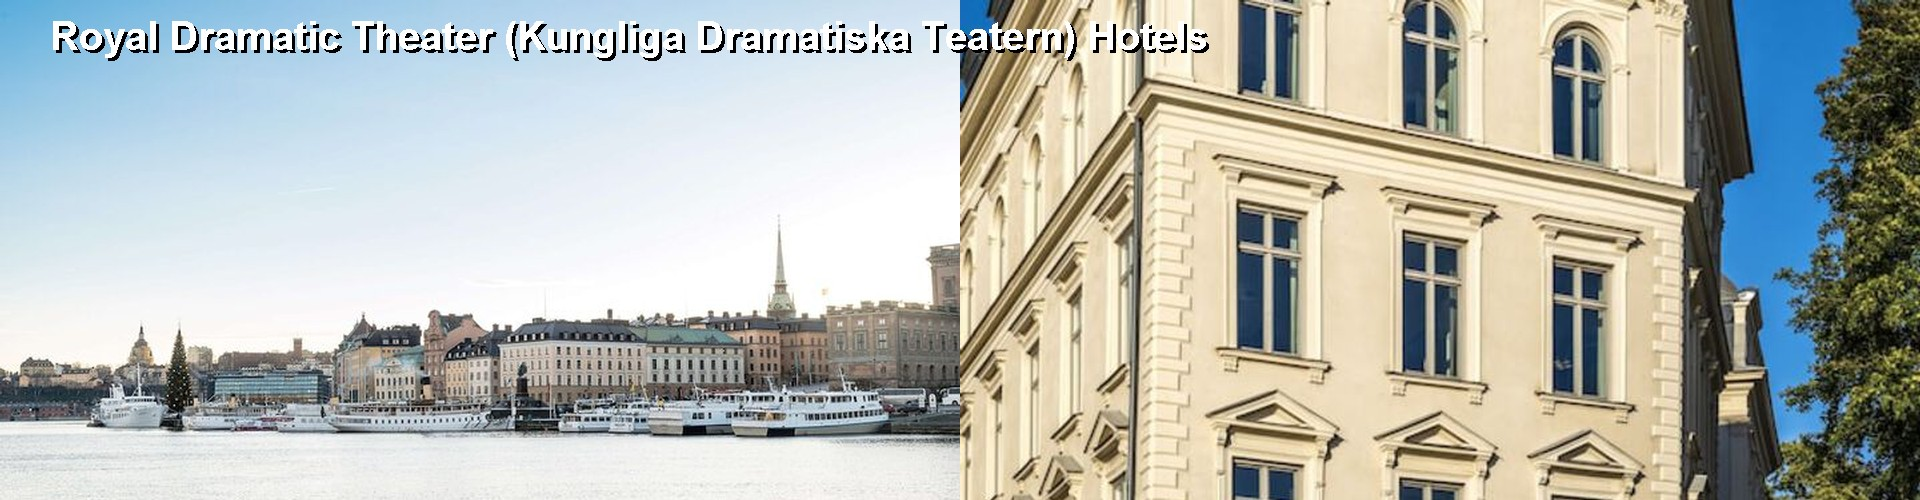 5 Best Hotels Near Royal Dramatic Theater Kungliga Dramatiska Teatern